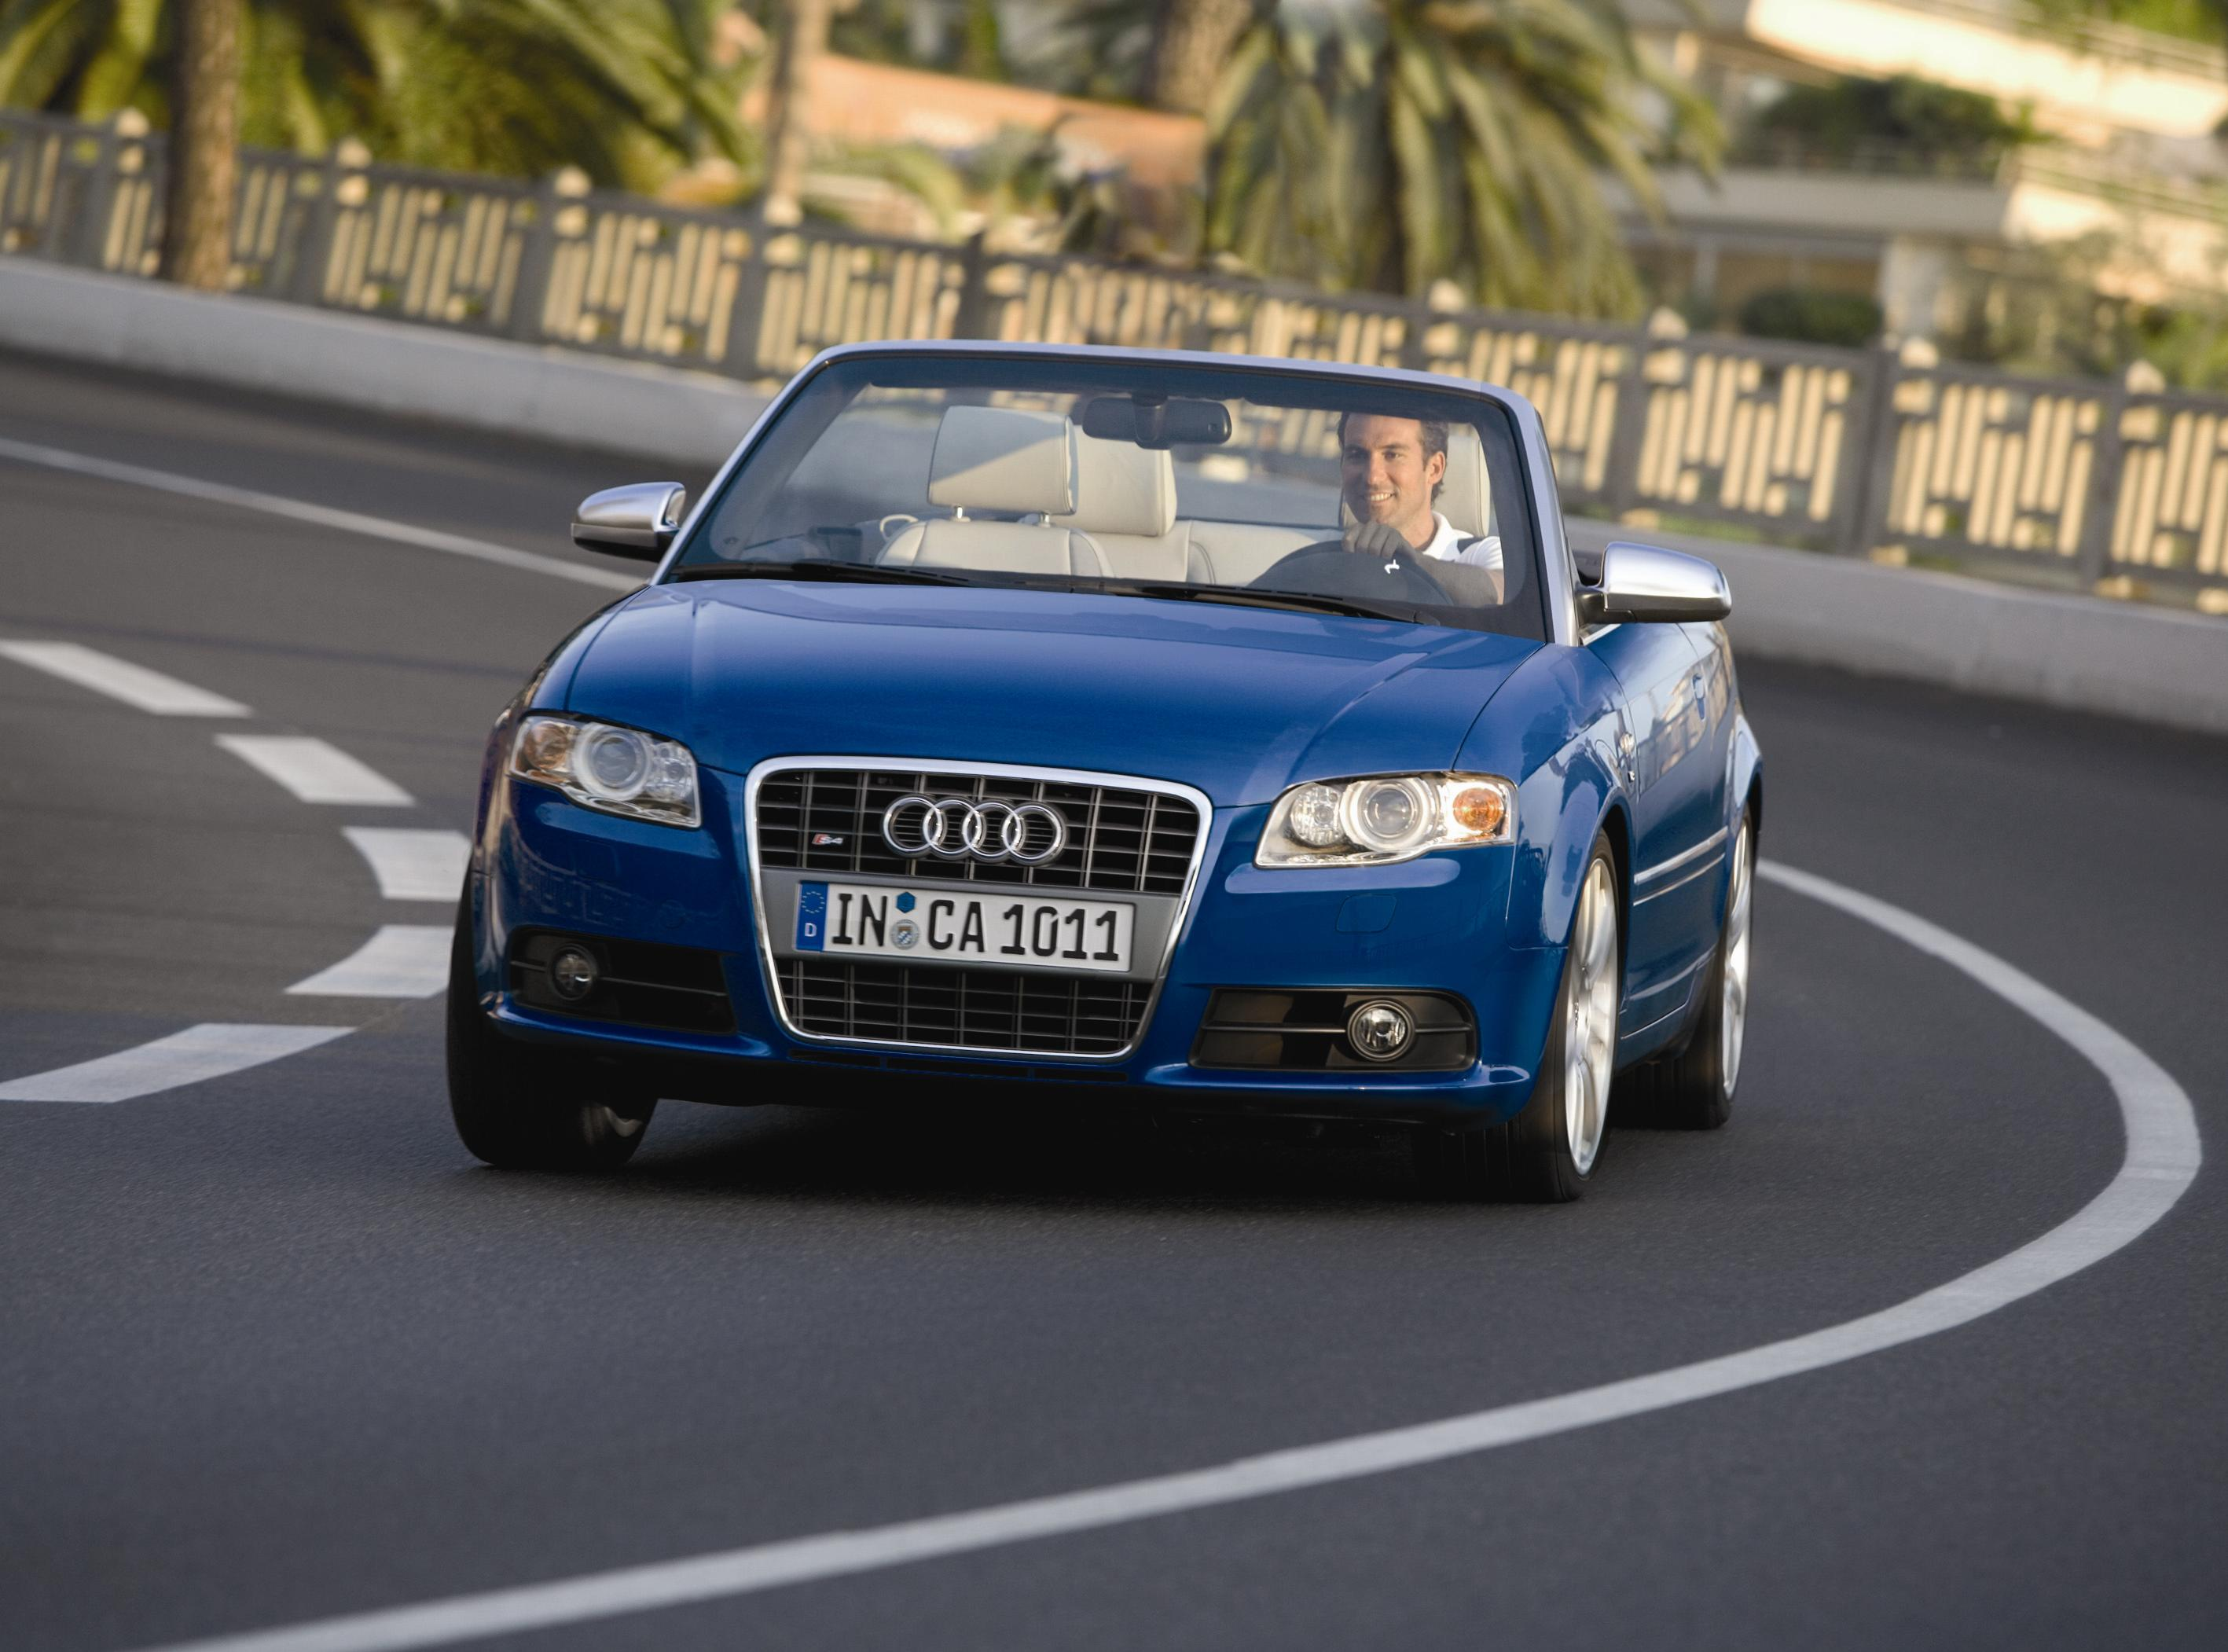 2007 Audi S4 Convertible | Top Speed. »